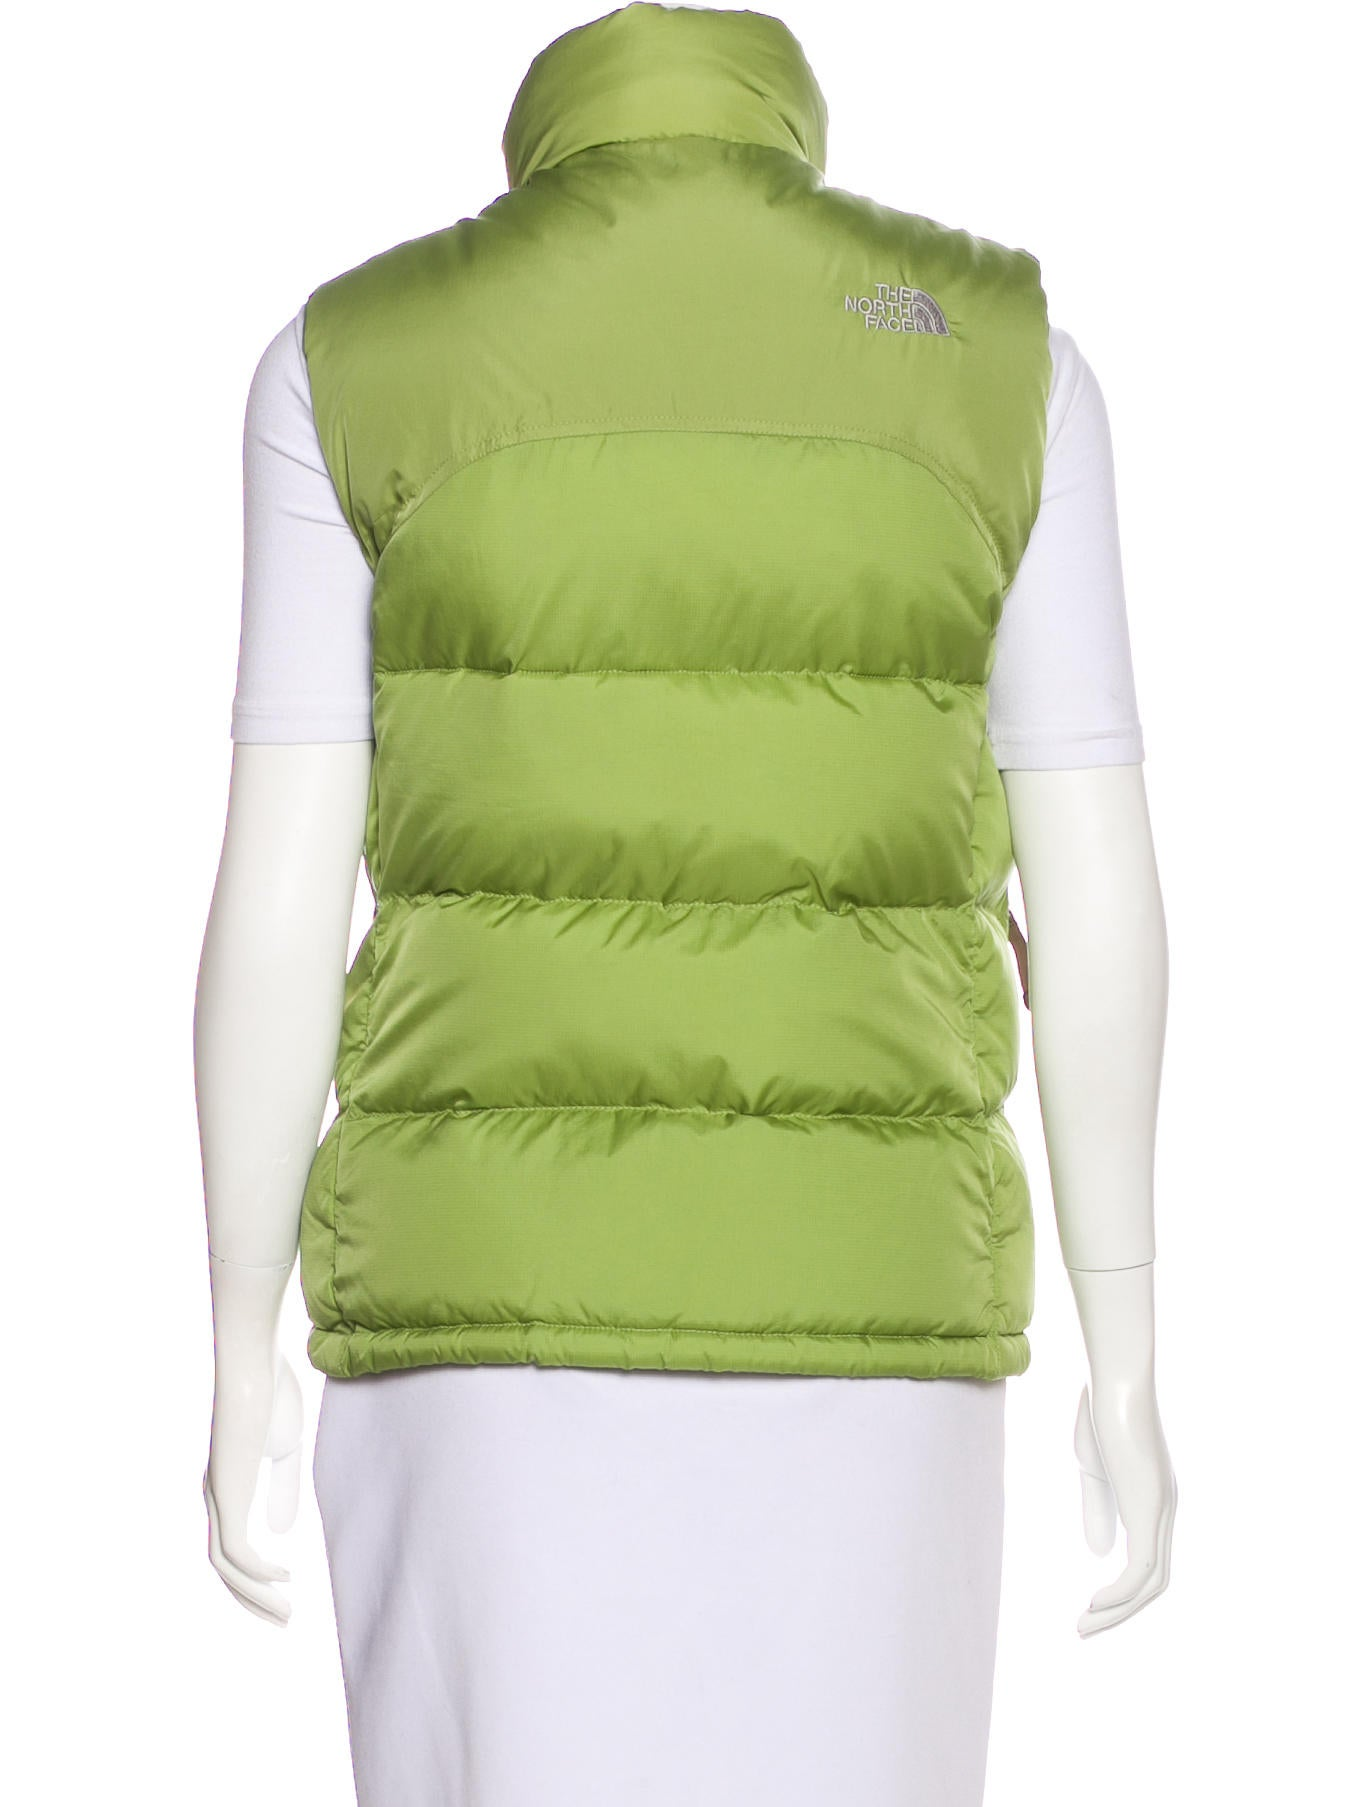 The North Face Zip Up Puffer Vest Clothing Wnorh21155